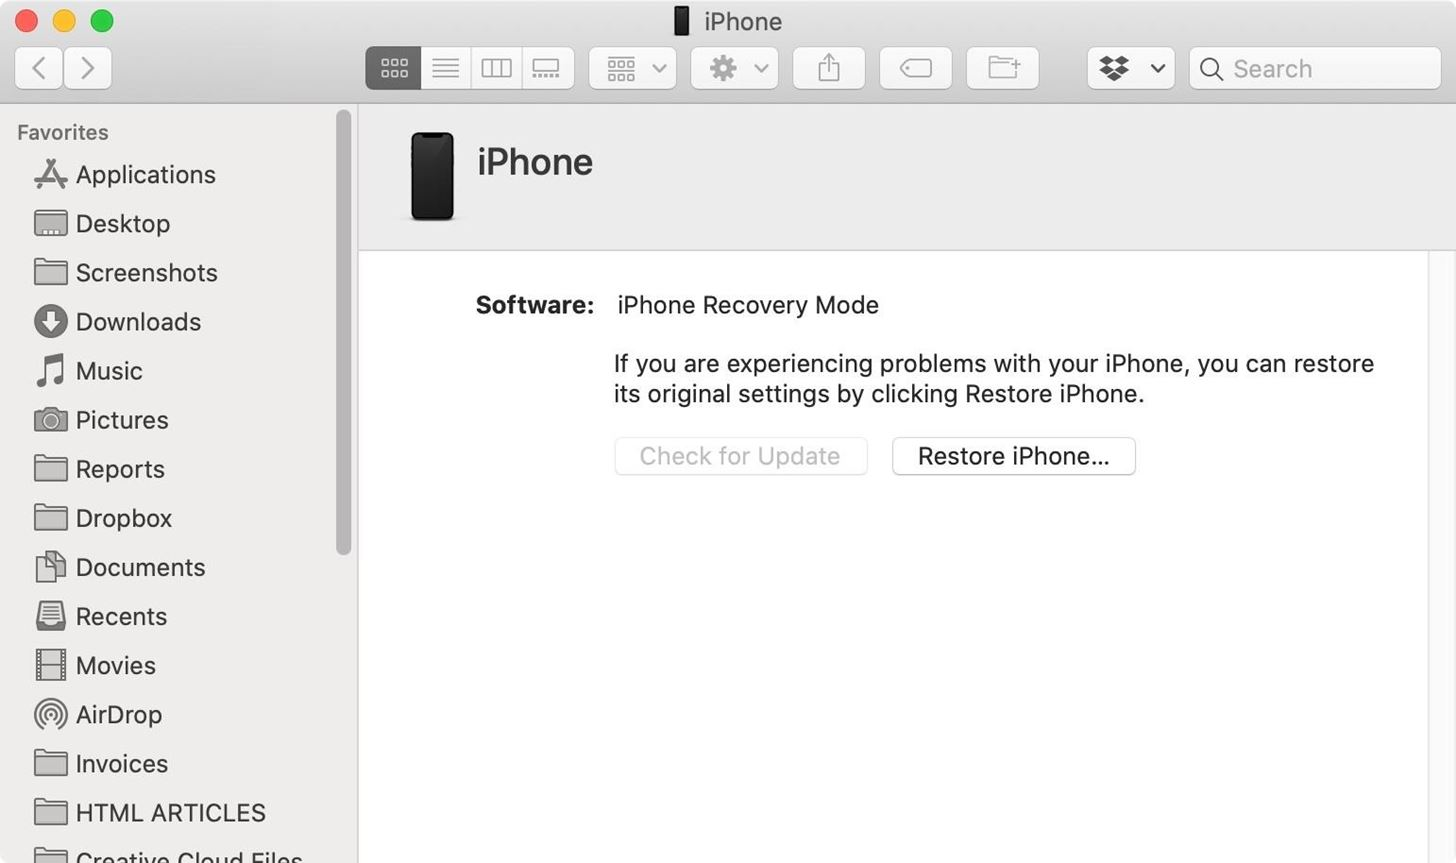 How to Use DFU Mode on Your iPhone 12, 12 Mini, 12 Pro, or 12 Pro Max to Restore iOS 14 Back to Working Condition